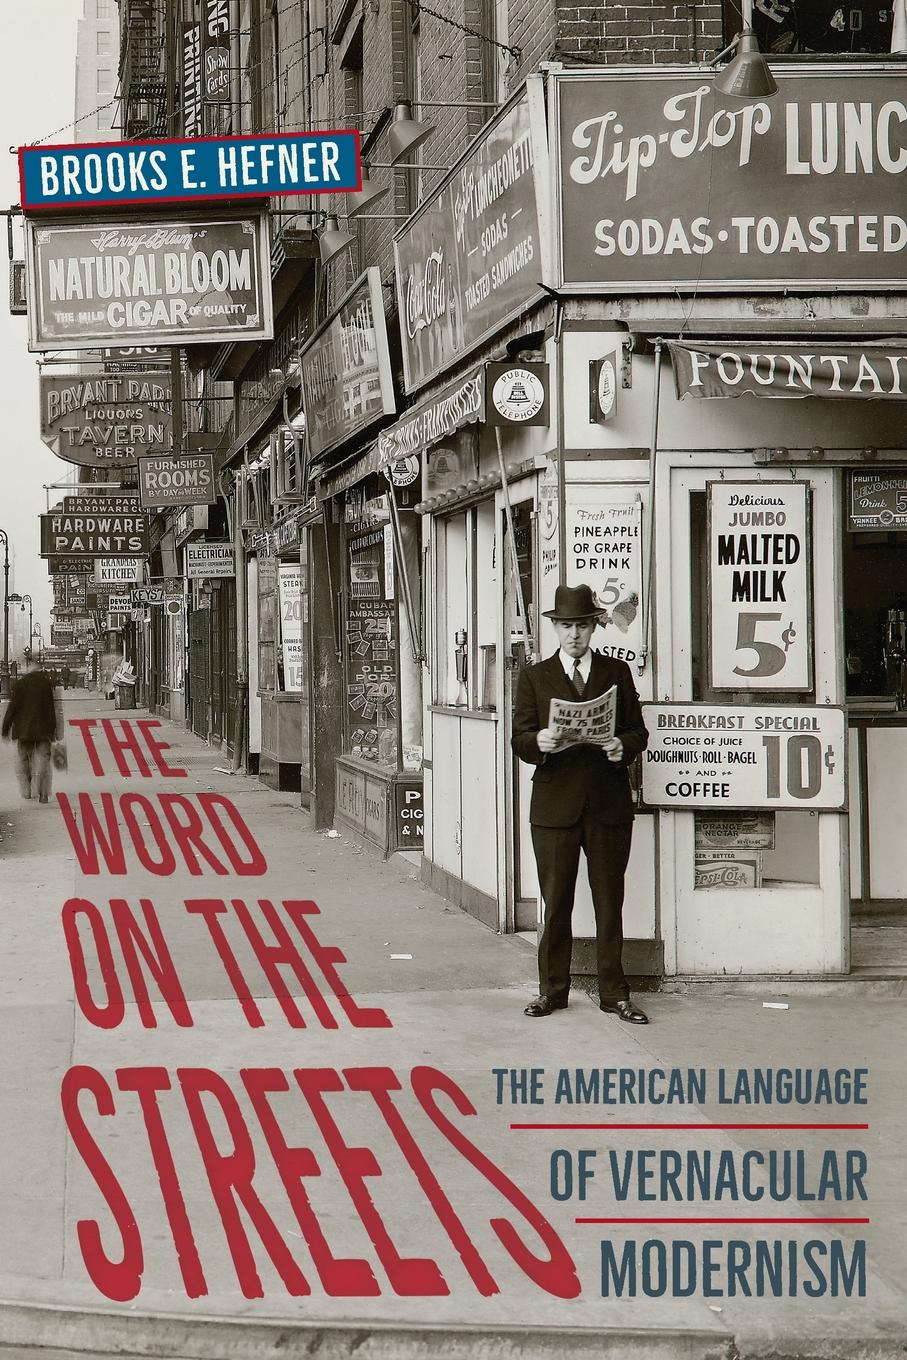 Brooks E Hefner The Word on the Streets. The American Language of Vernacular Modernism form modernism